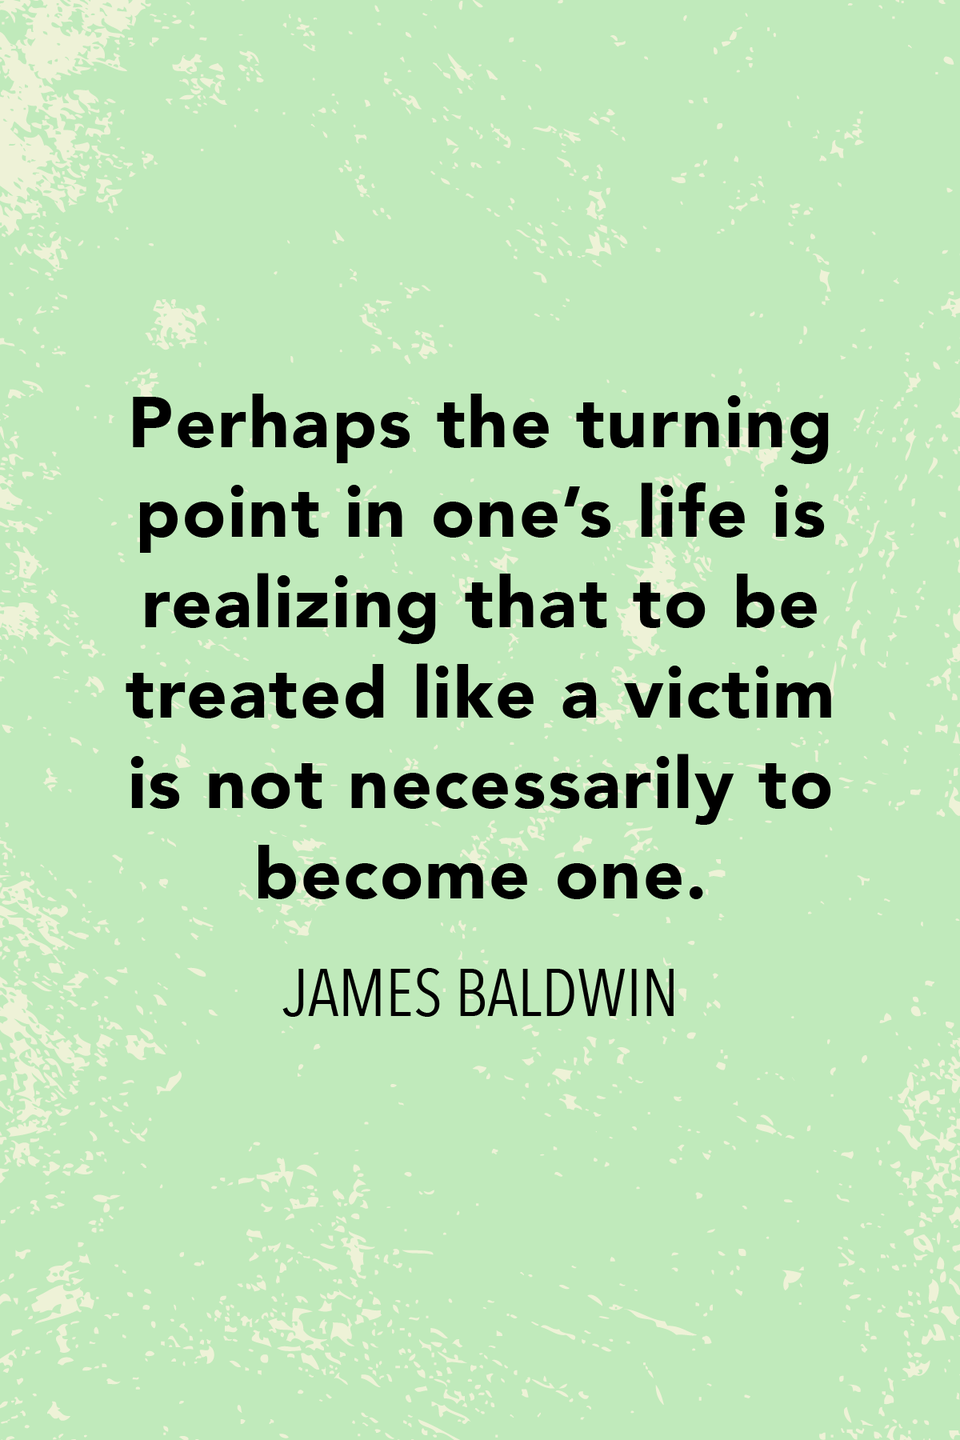 """<p>""""Perhaps the turning point in one's life is realizing that to be treated like a victim is not necessarily to become one,"""" Baldwin said in <em>The Paris Review</em>.</p>"""